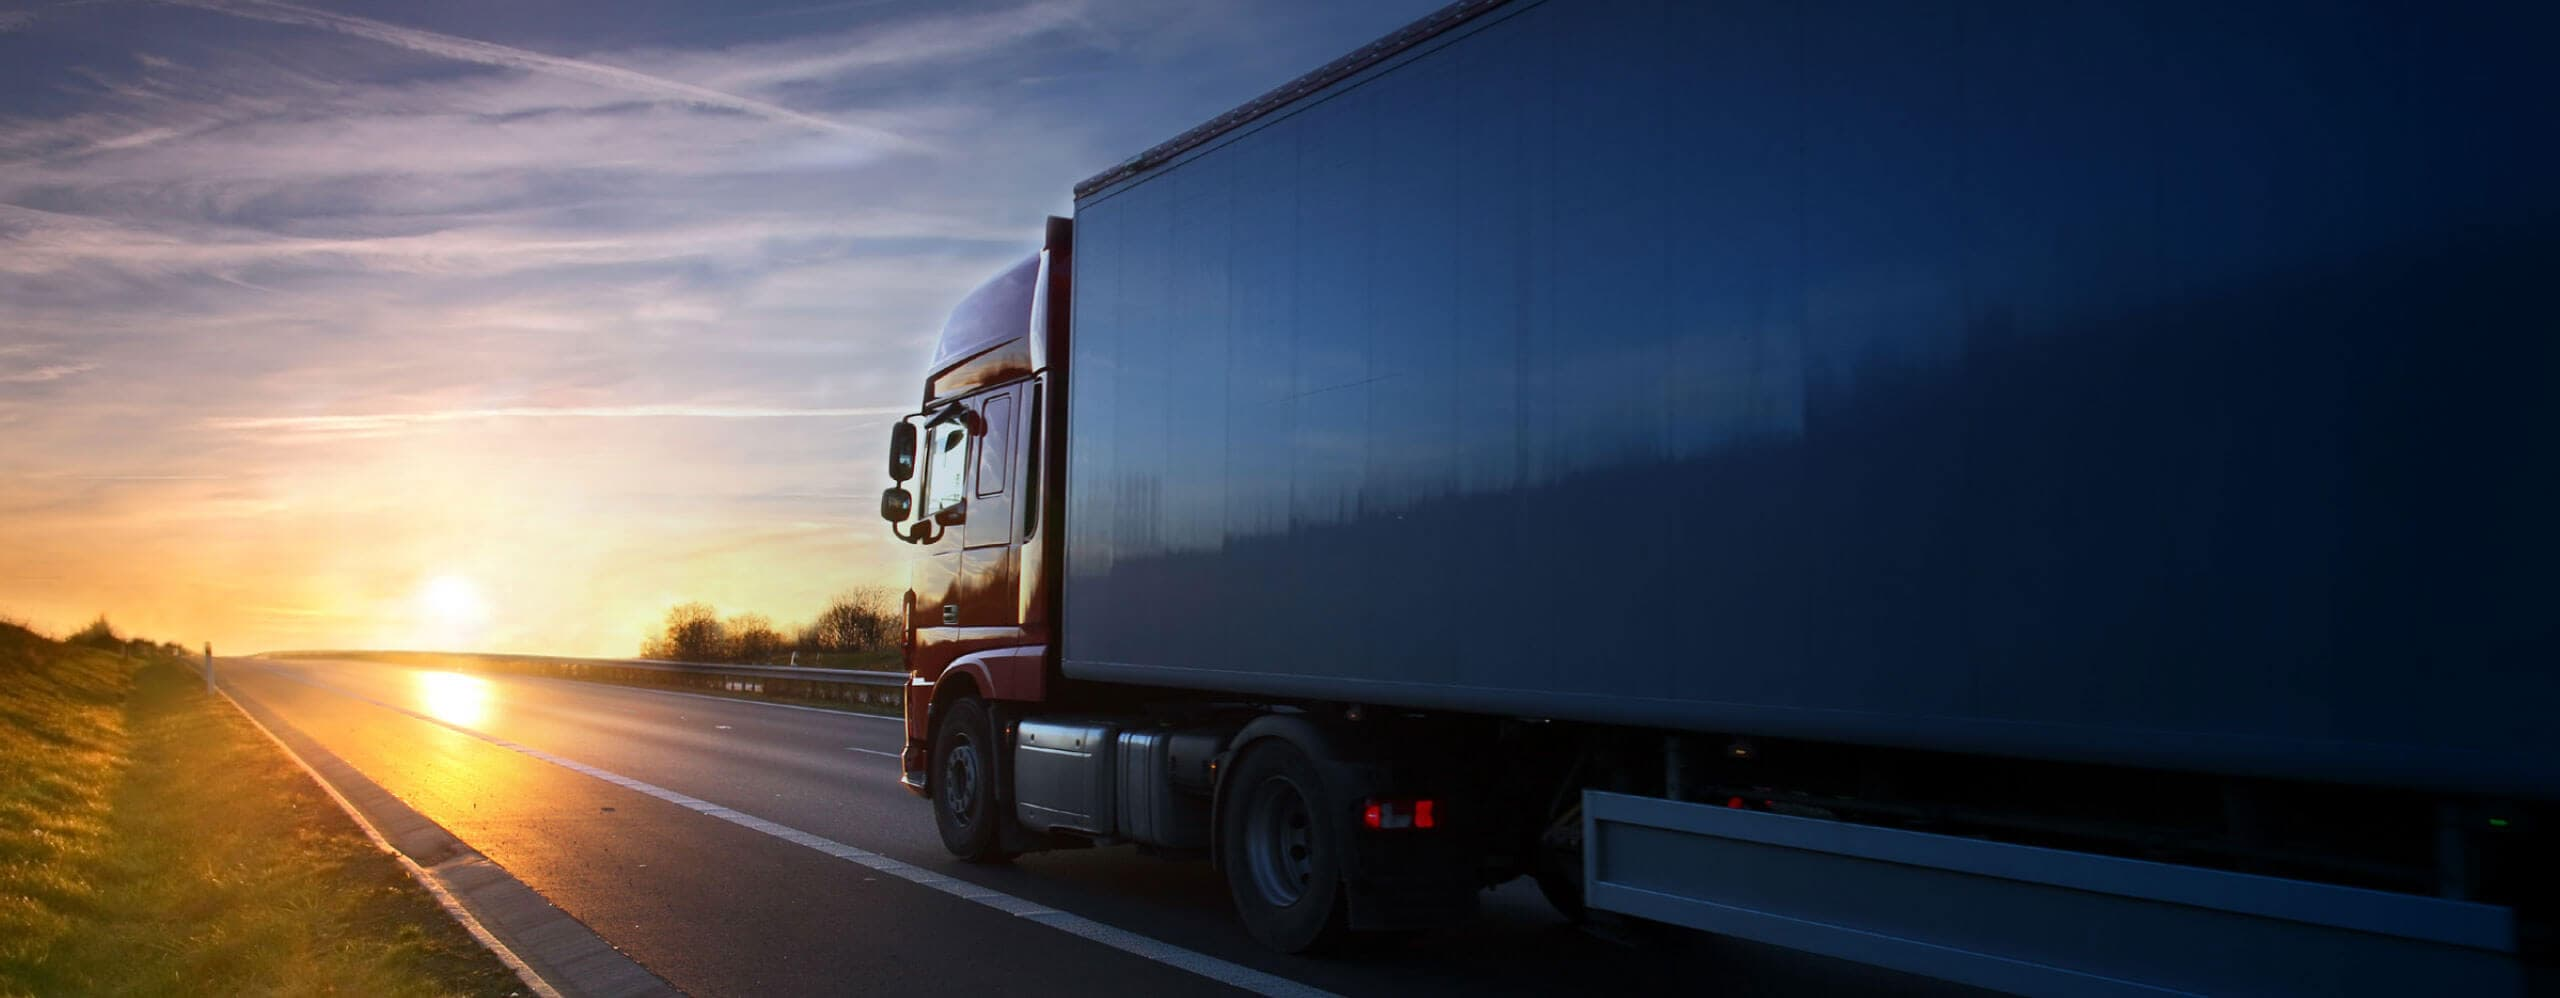 A transport truck drives towards us as the sun sets behind it.